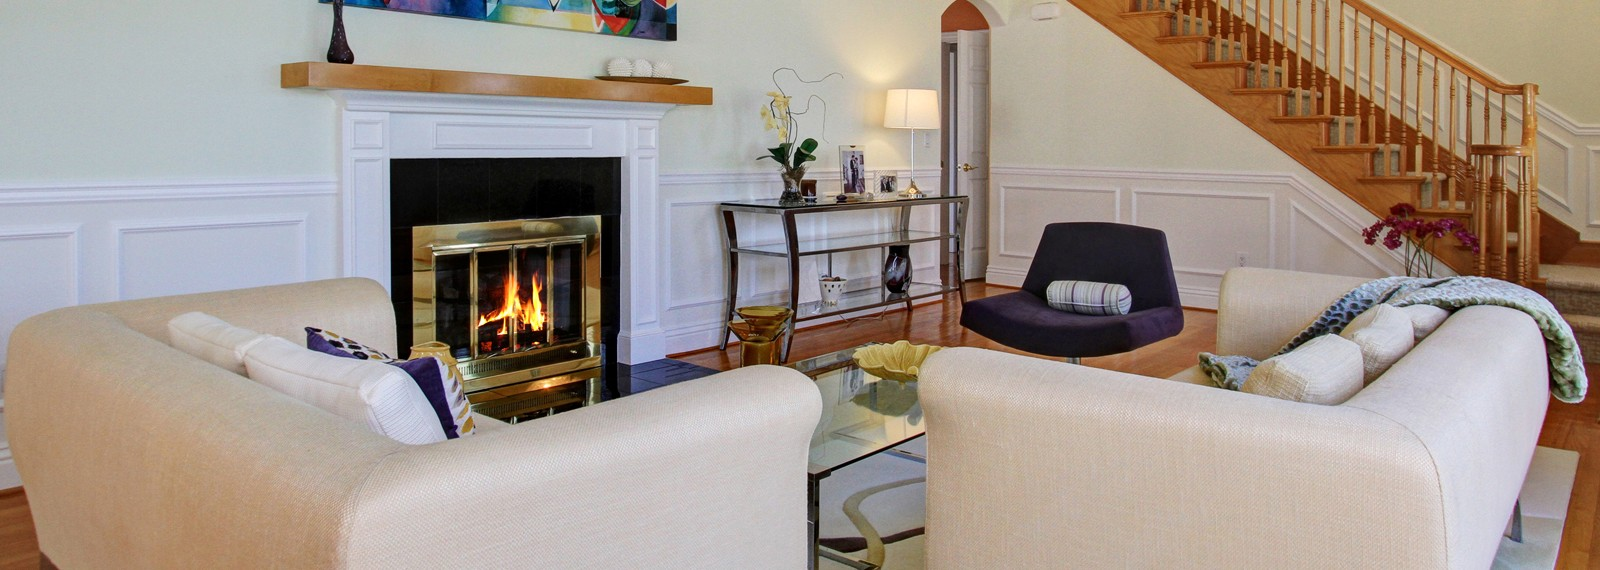 Living Room with Fireplace - Nina Kirkendall